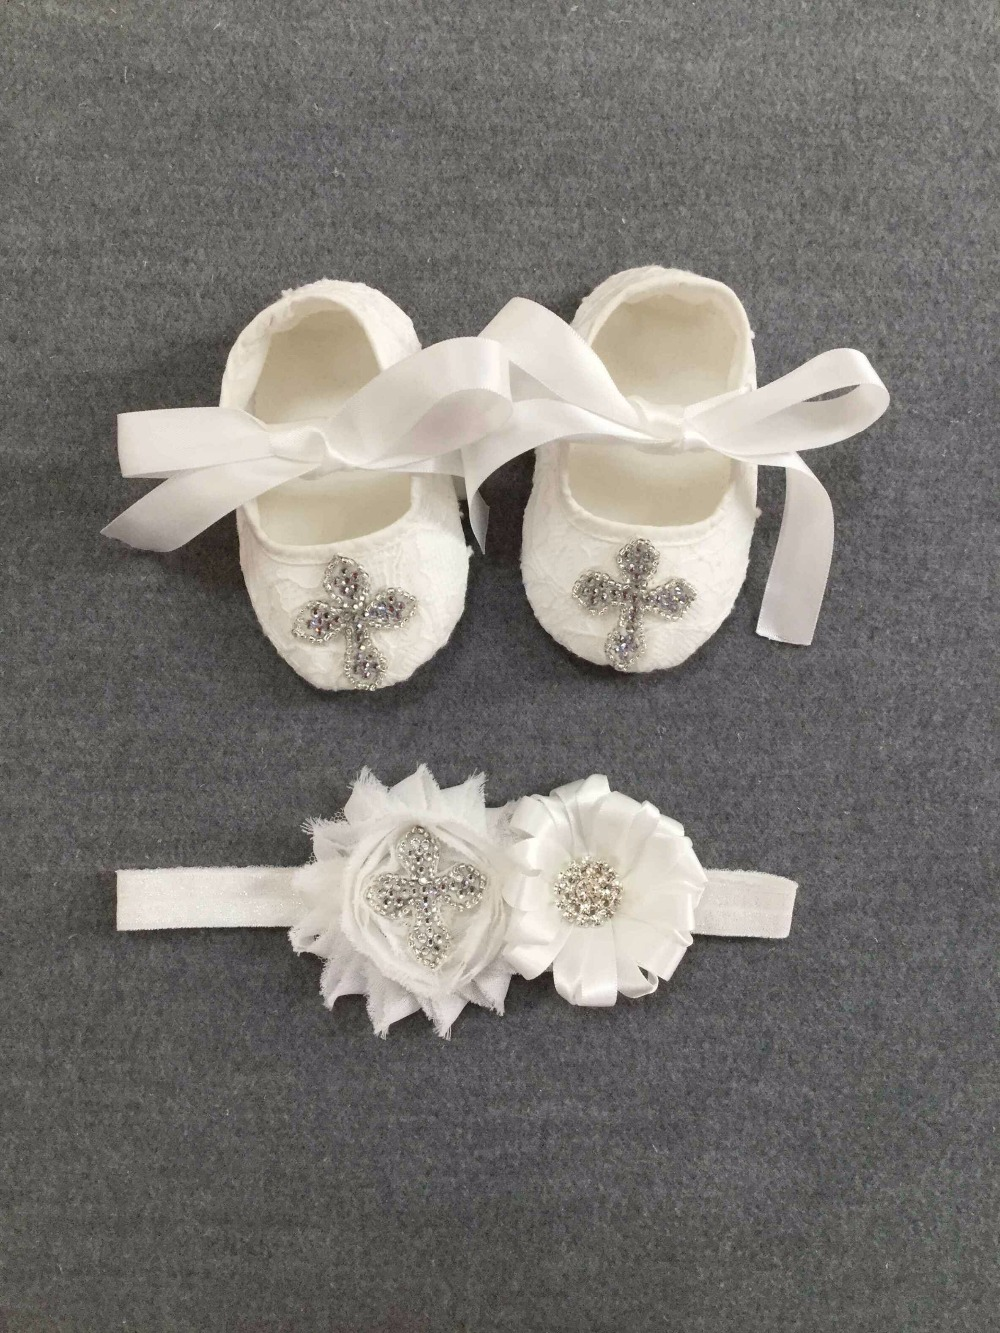 2017 0 18m soft baby shoes crochet toddler infant White Lace Christening Shoes newborn infant baby girl princess